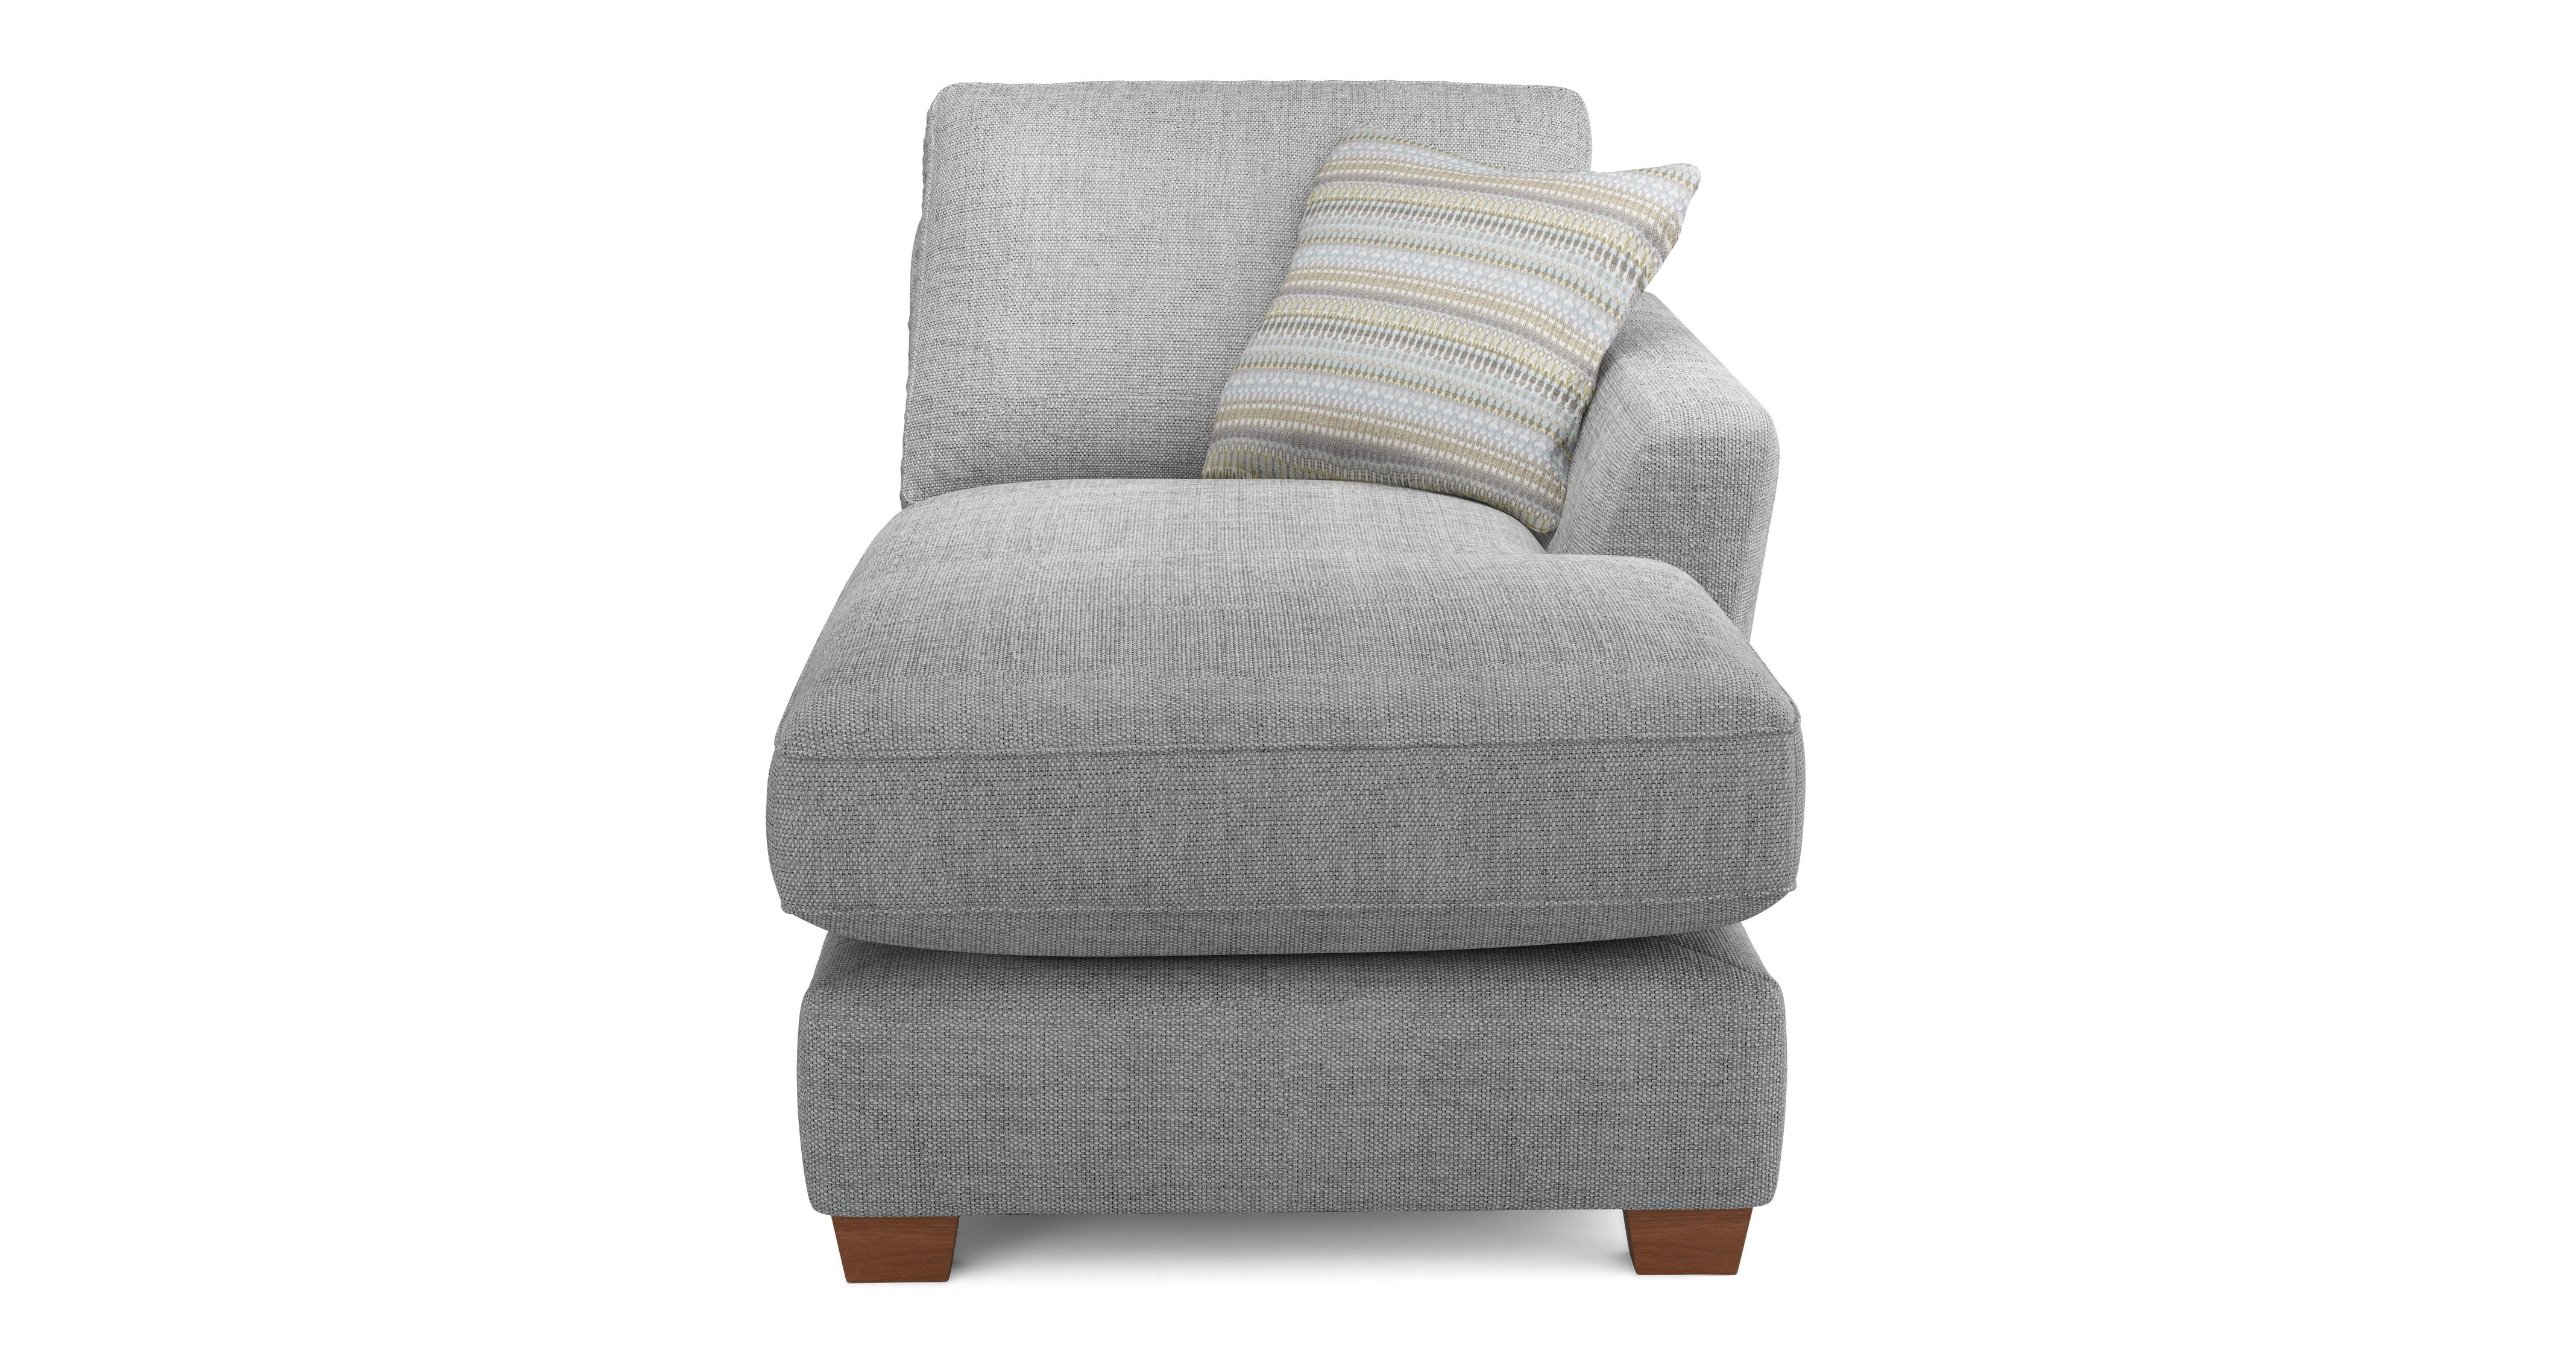 dfs sophia sofa reviews cover fabric dye right arm facing chaise unit ireland